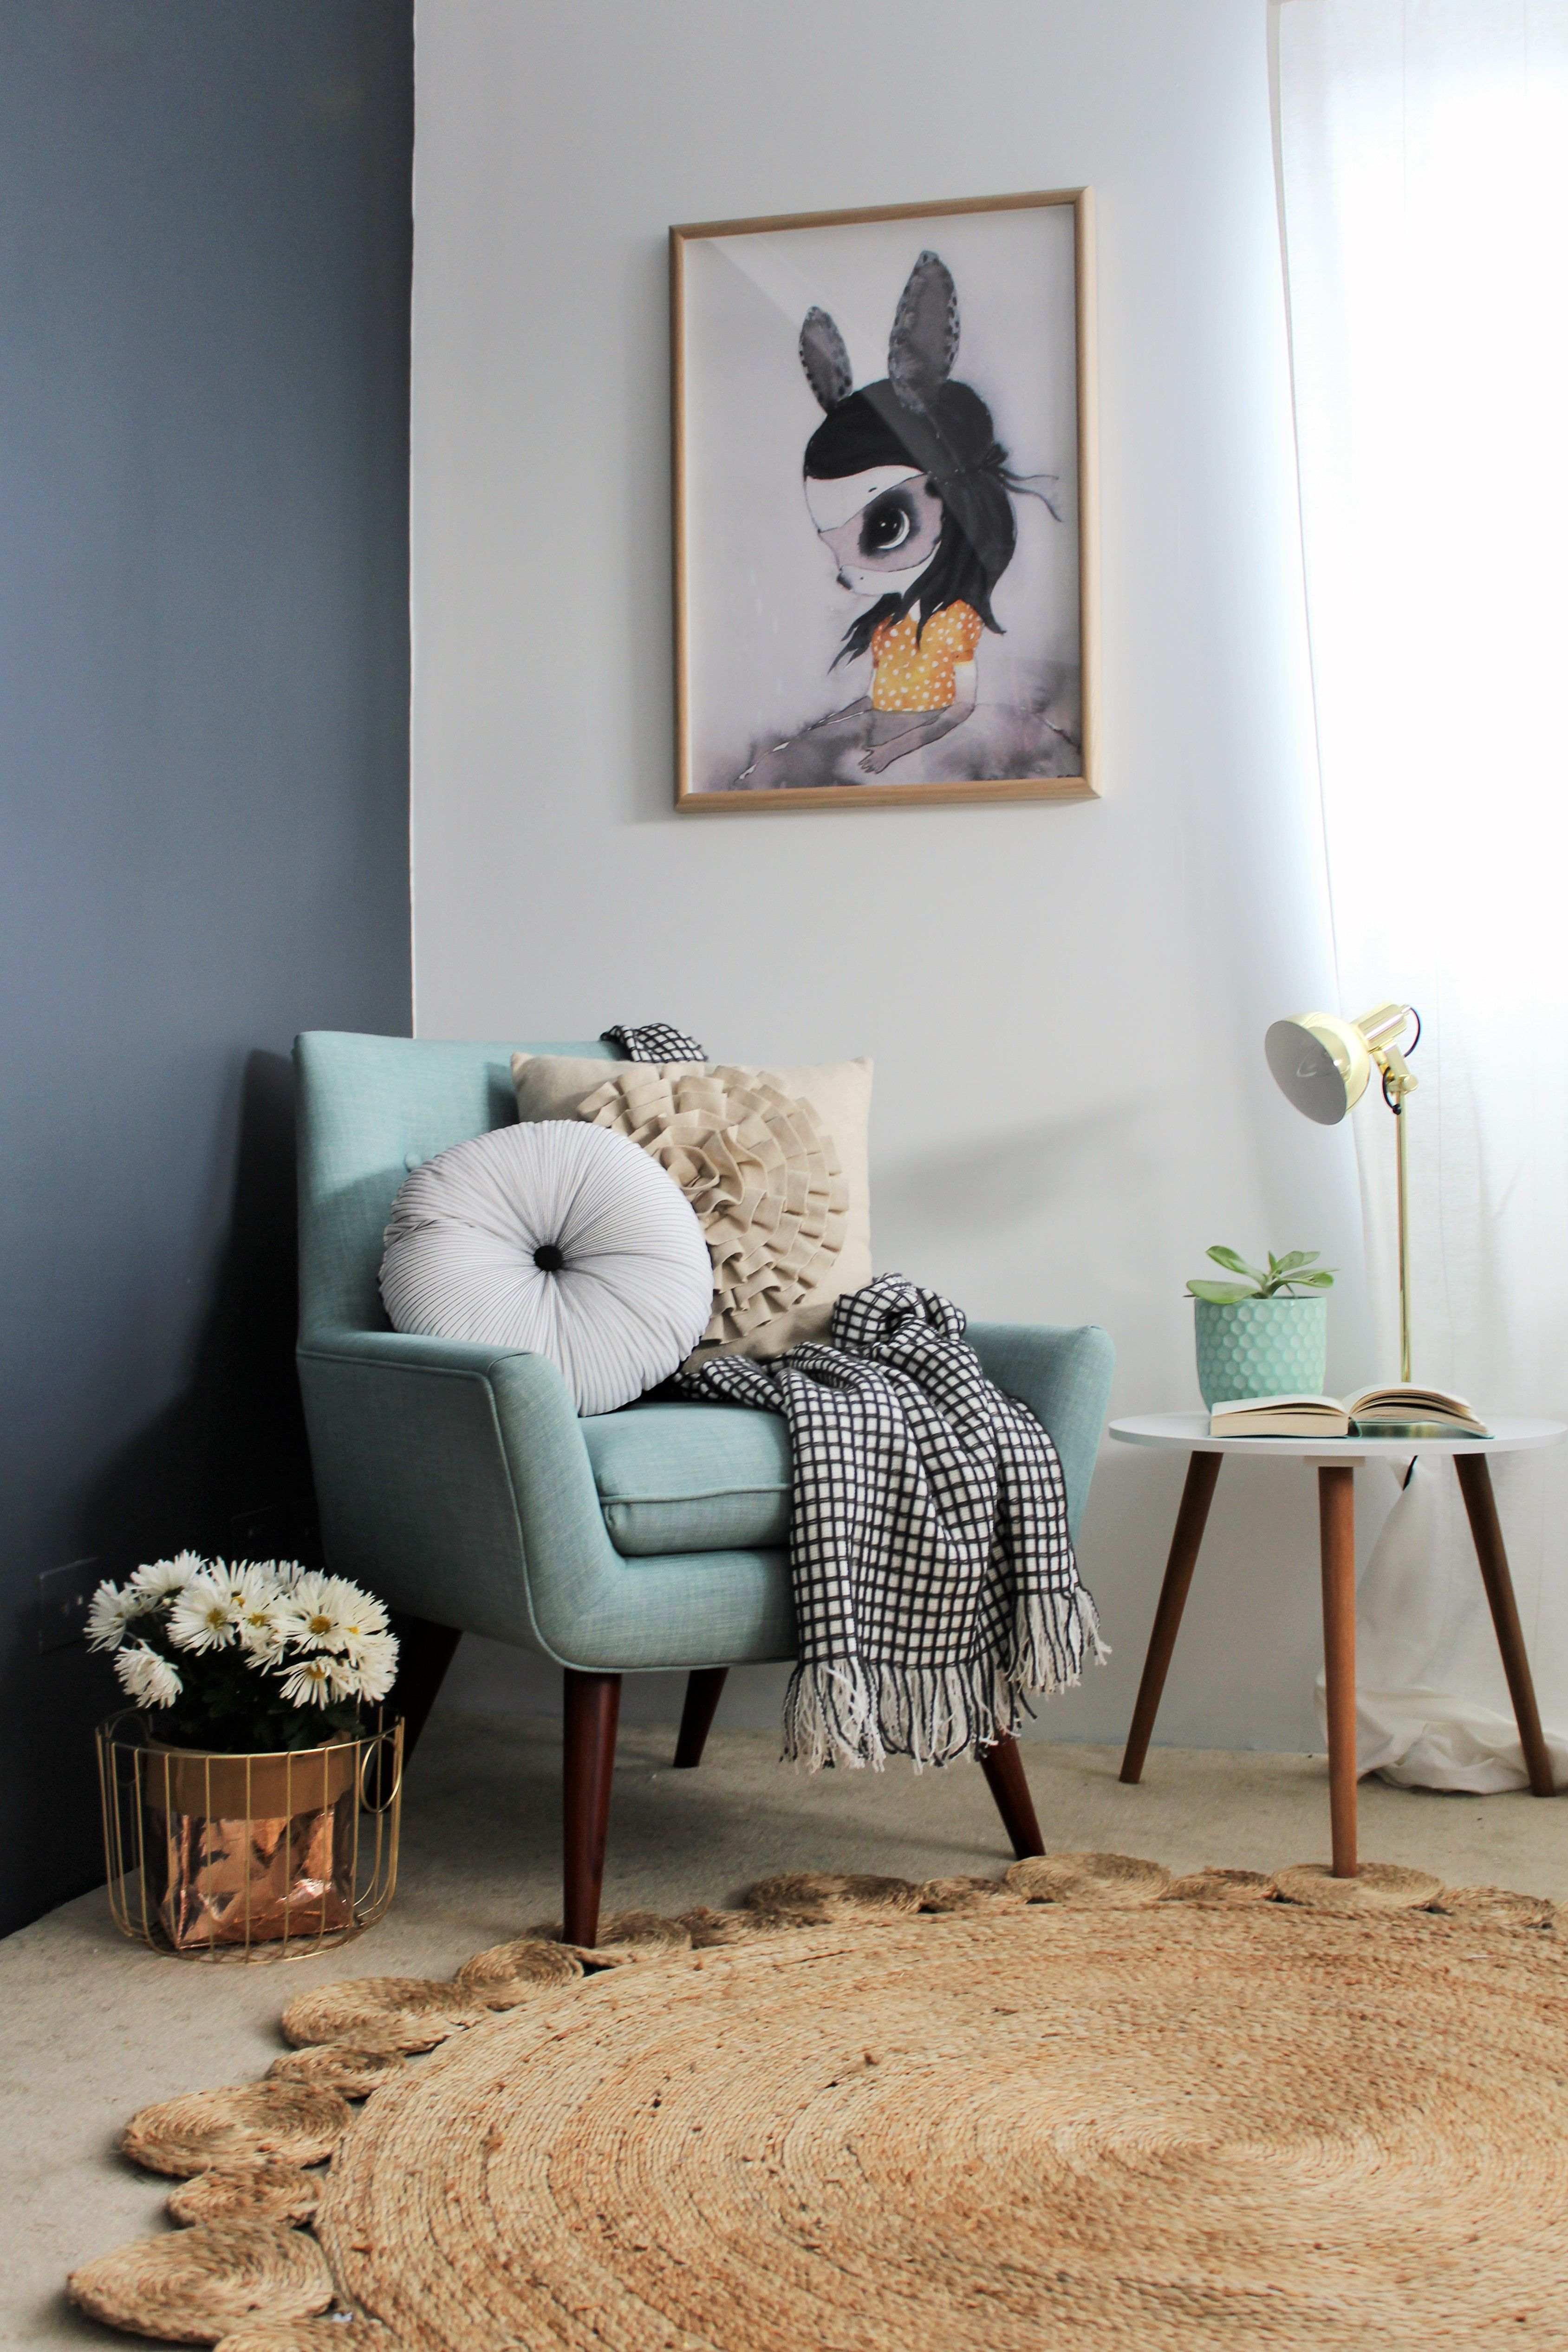 Target Australia Furniture Interiors Amazing Interior Decor Finds From Target Australia